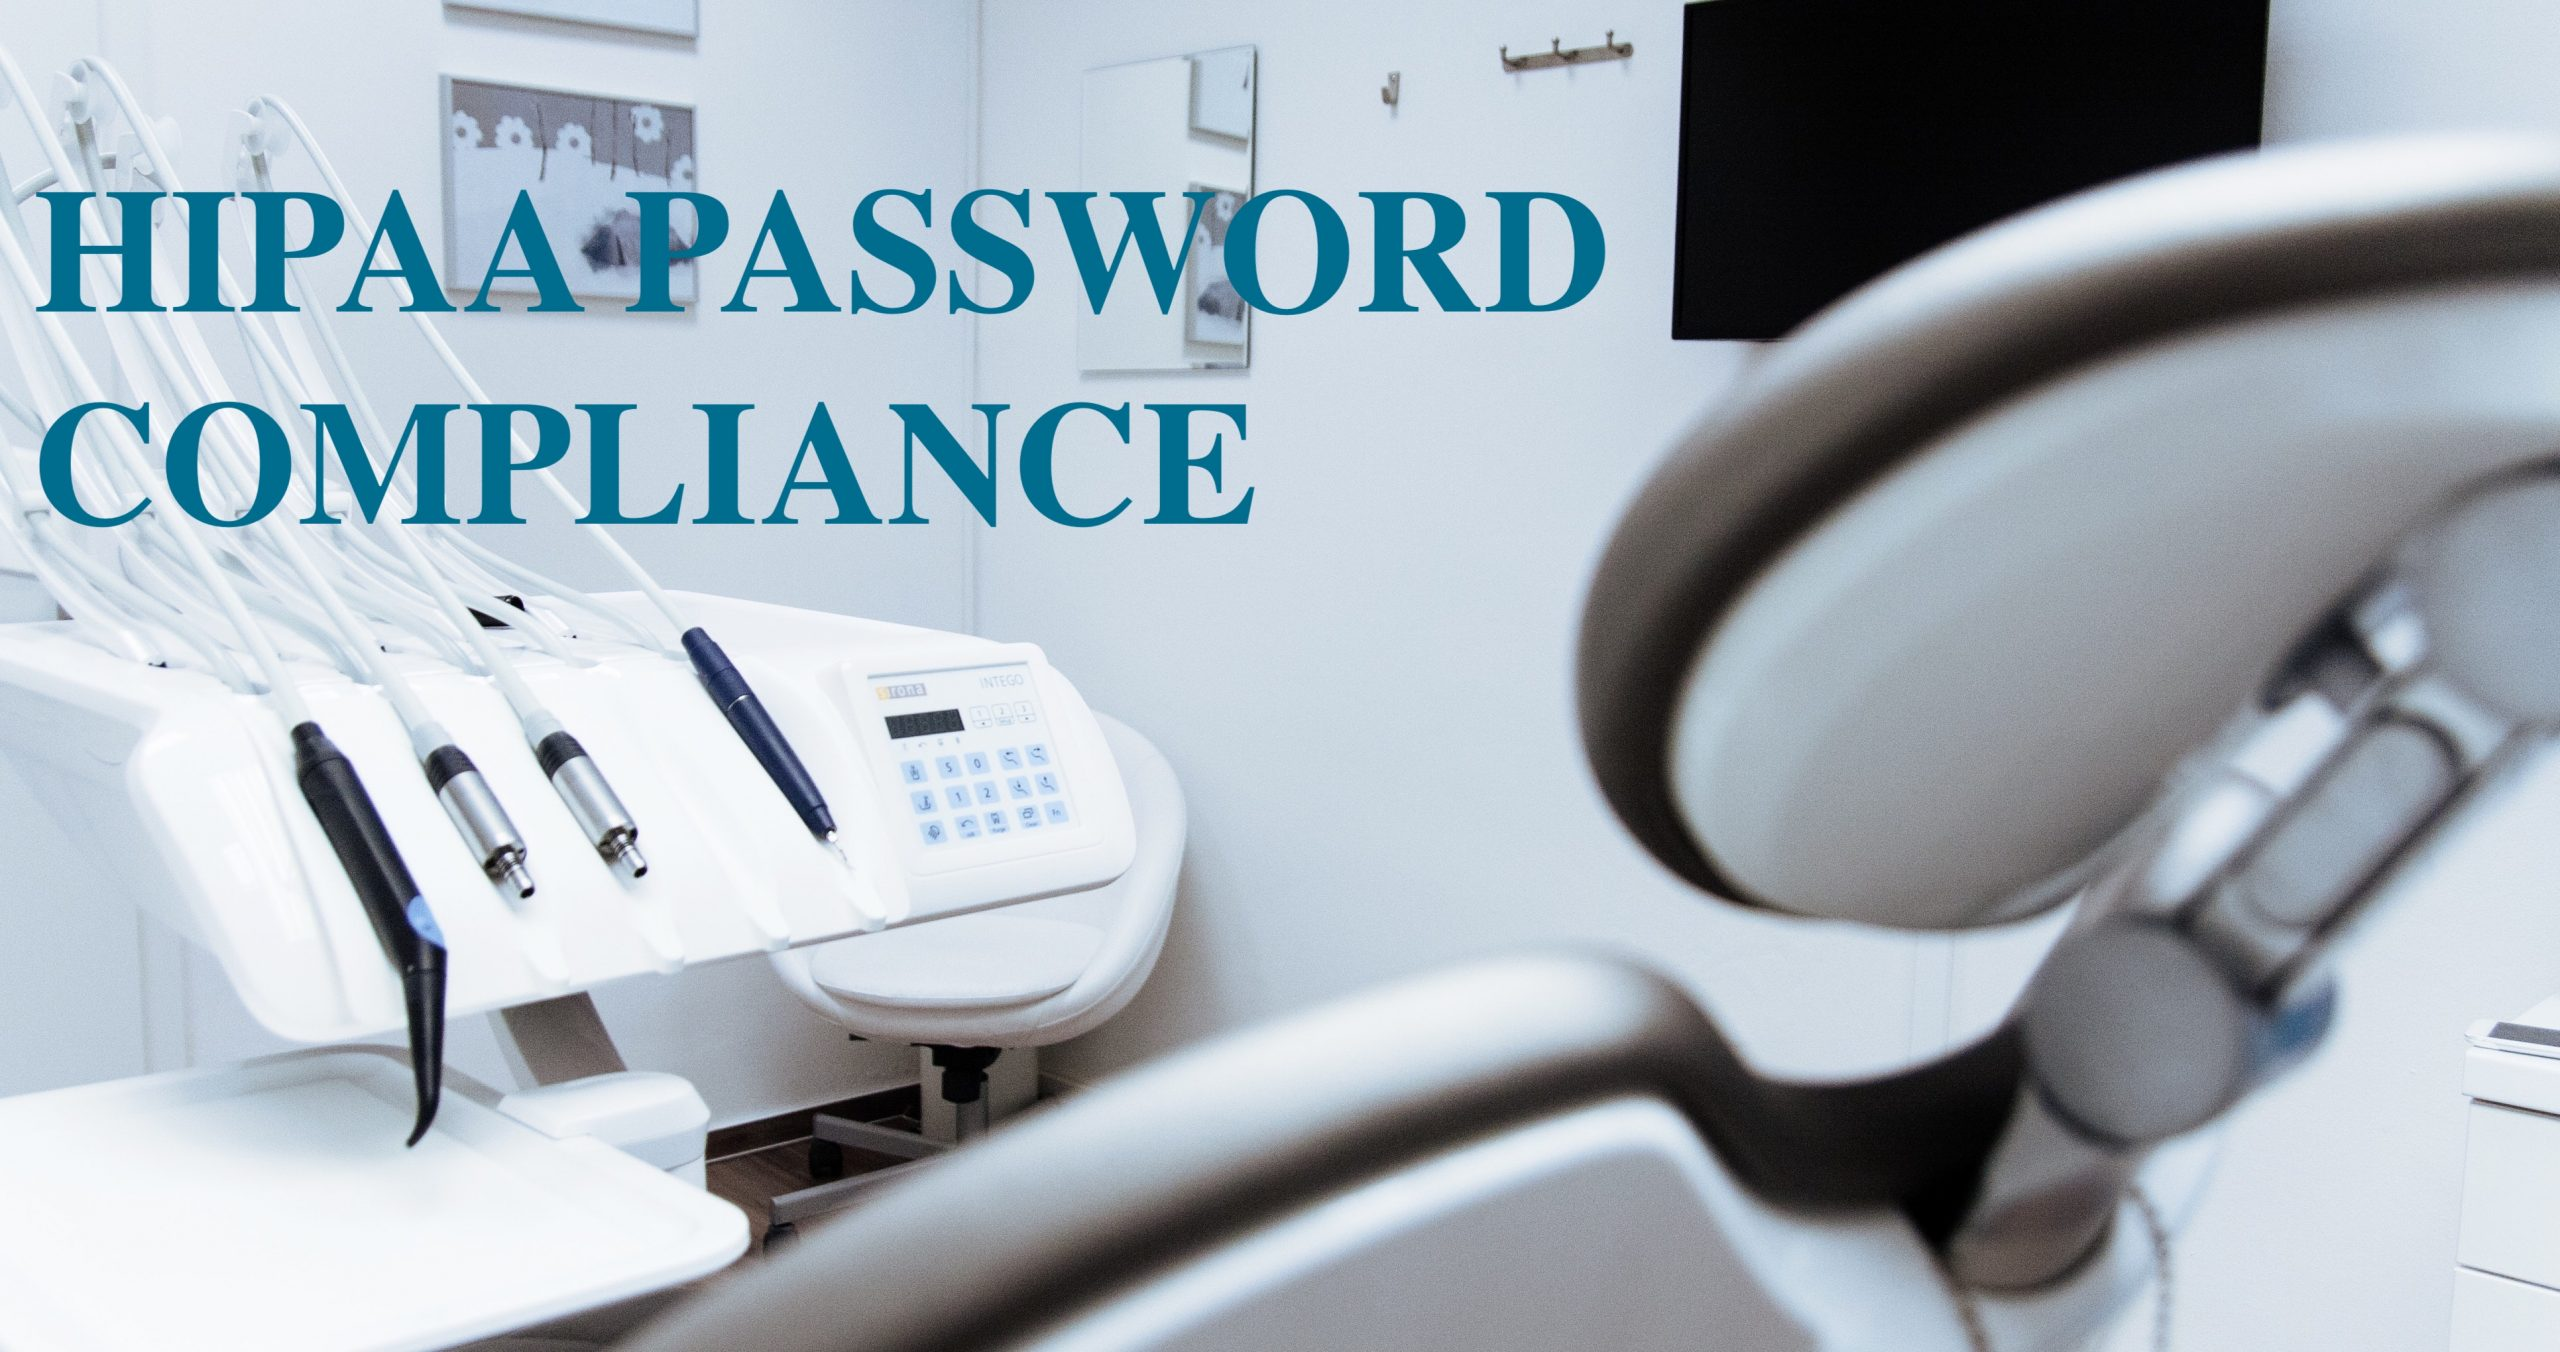 The HIPAA Password Requirements and the Best Way to Comply With Them